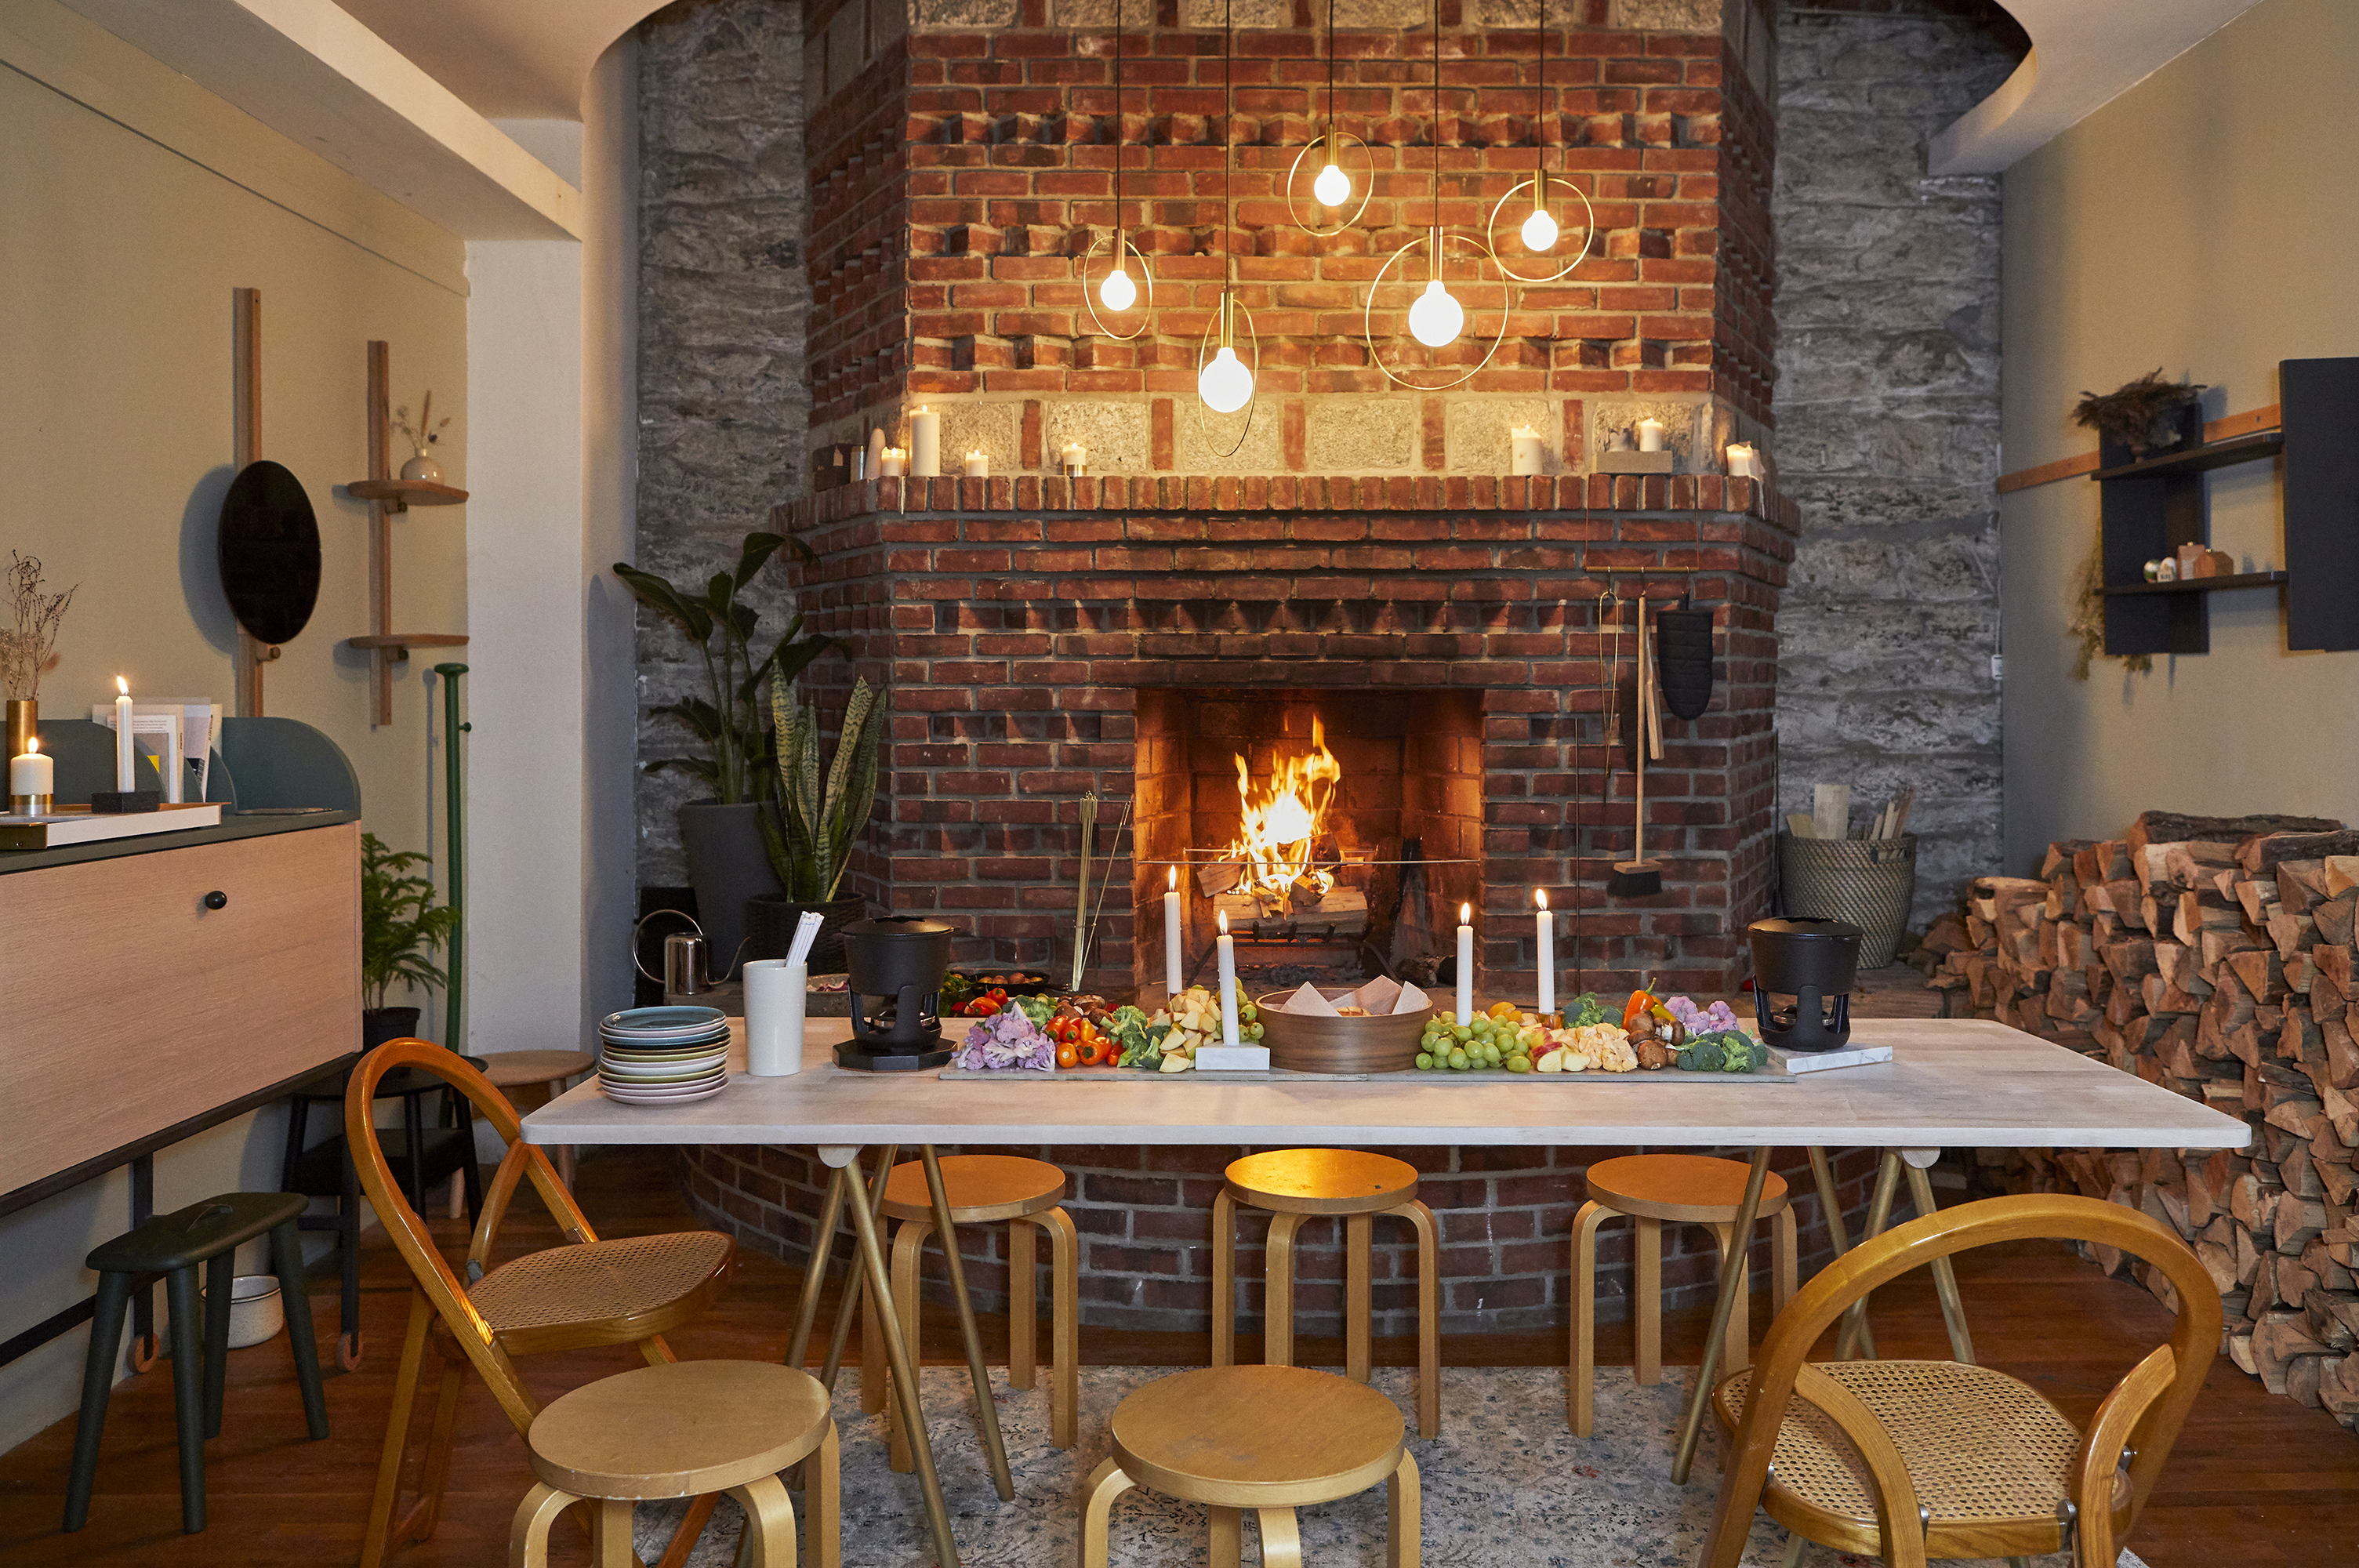 A designer's guide to holiday entertaining